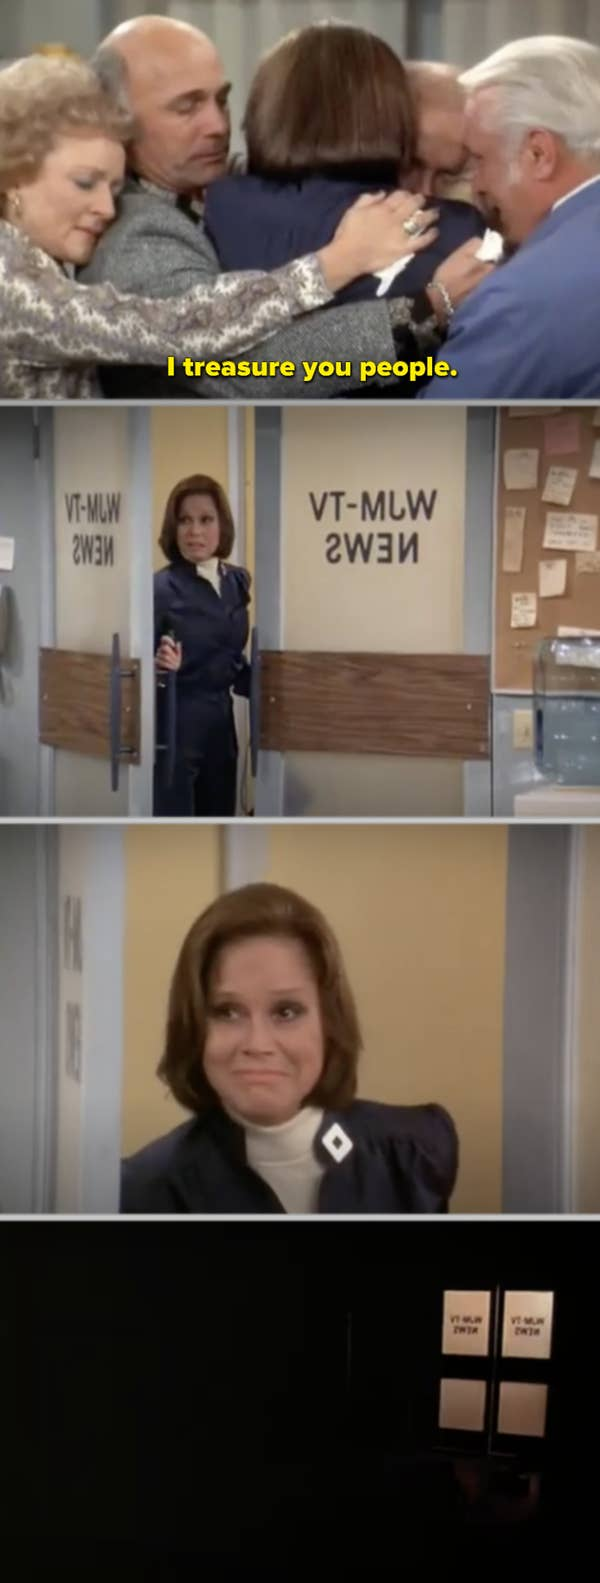 5. When Mary talked about how all of her coworkers had become her family, she turned off the lights in the newsroom for the last time before she left the studio in The Mary Tyler Moore Show. As a result, all of the show's episodes come to a perfect conclusion in this bittersweet and funny episode.